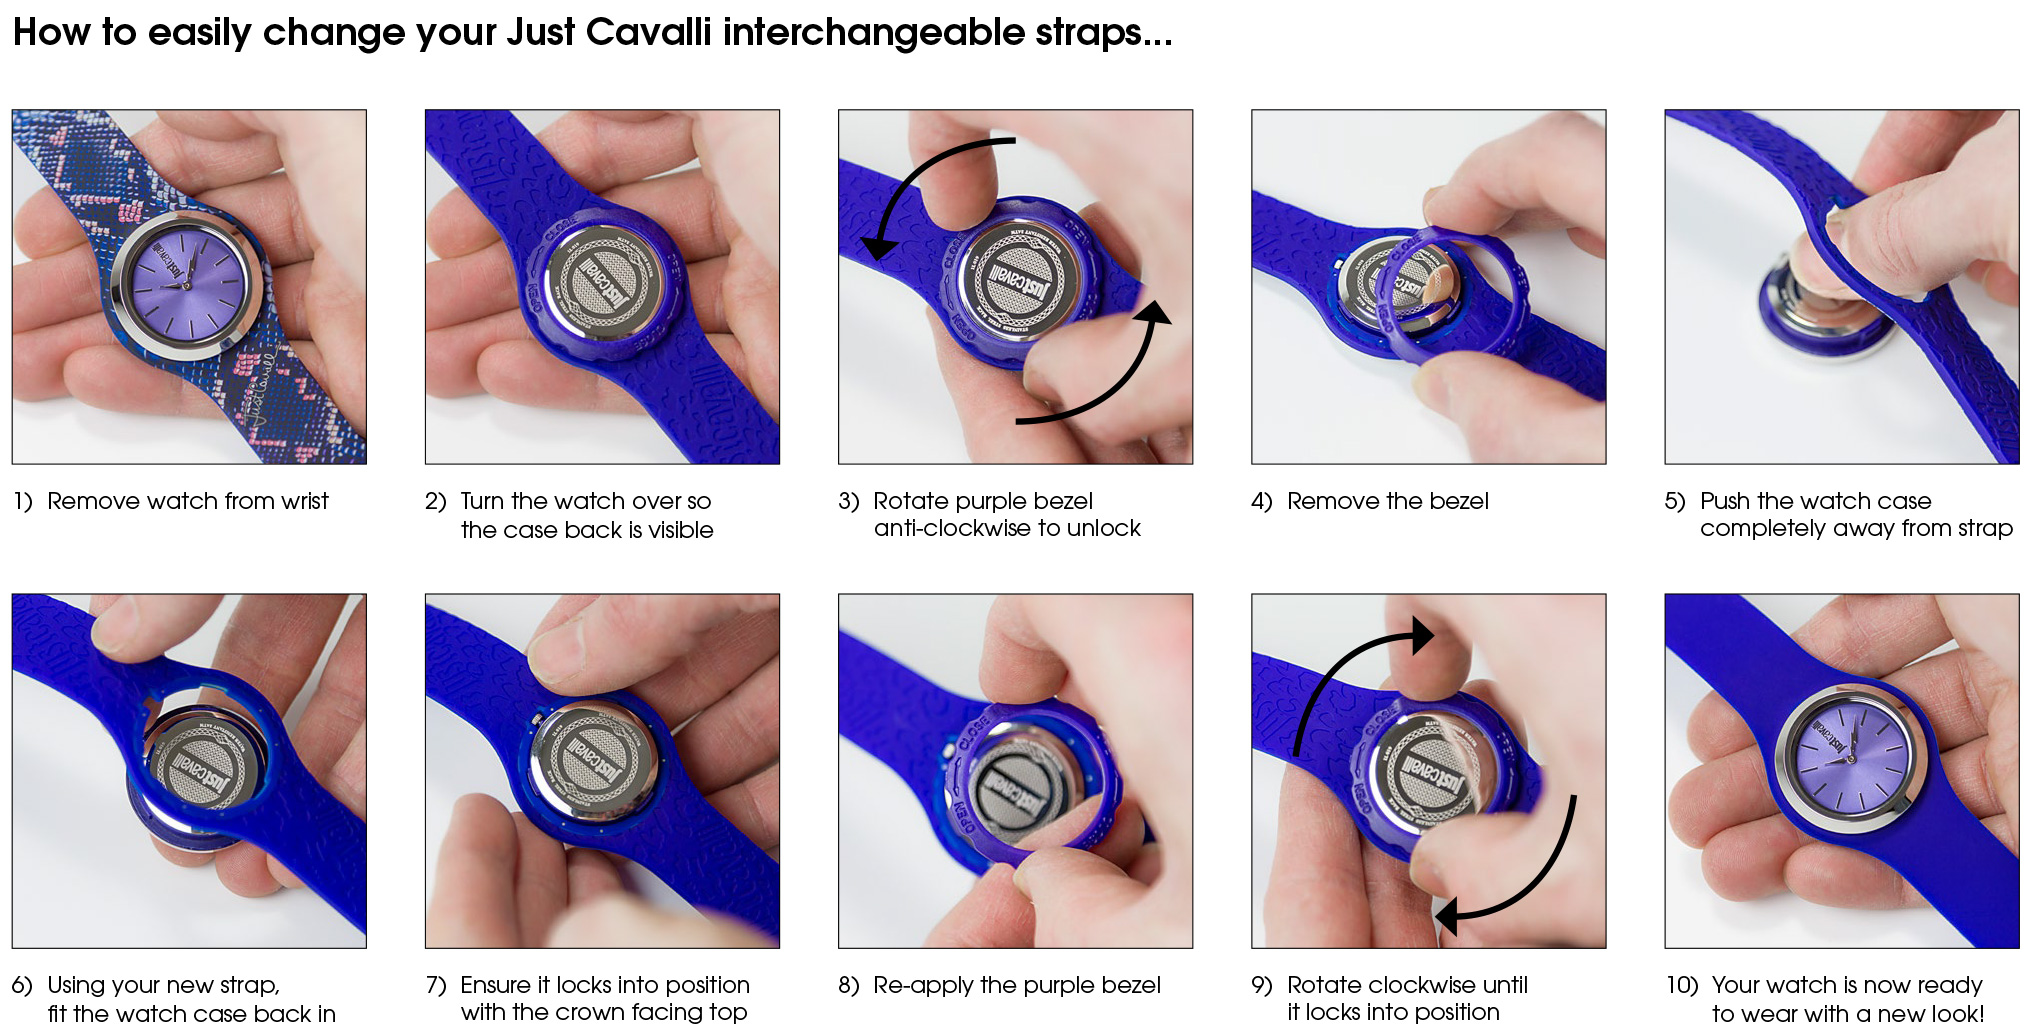 Just-Cavalli-Interchangeable-Watch-Strap-Instructions.jpg